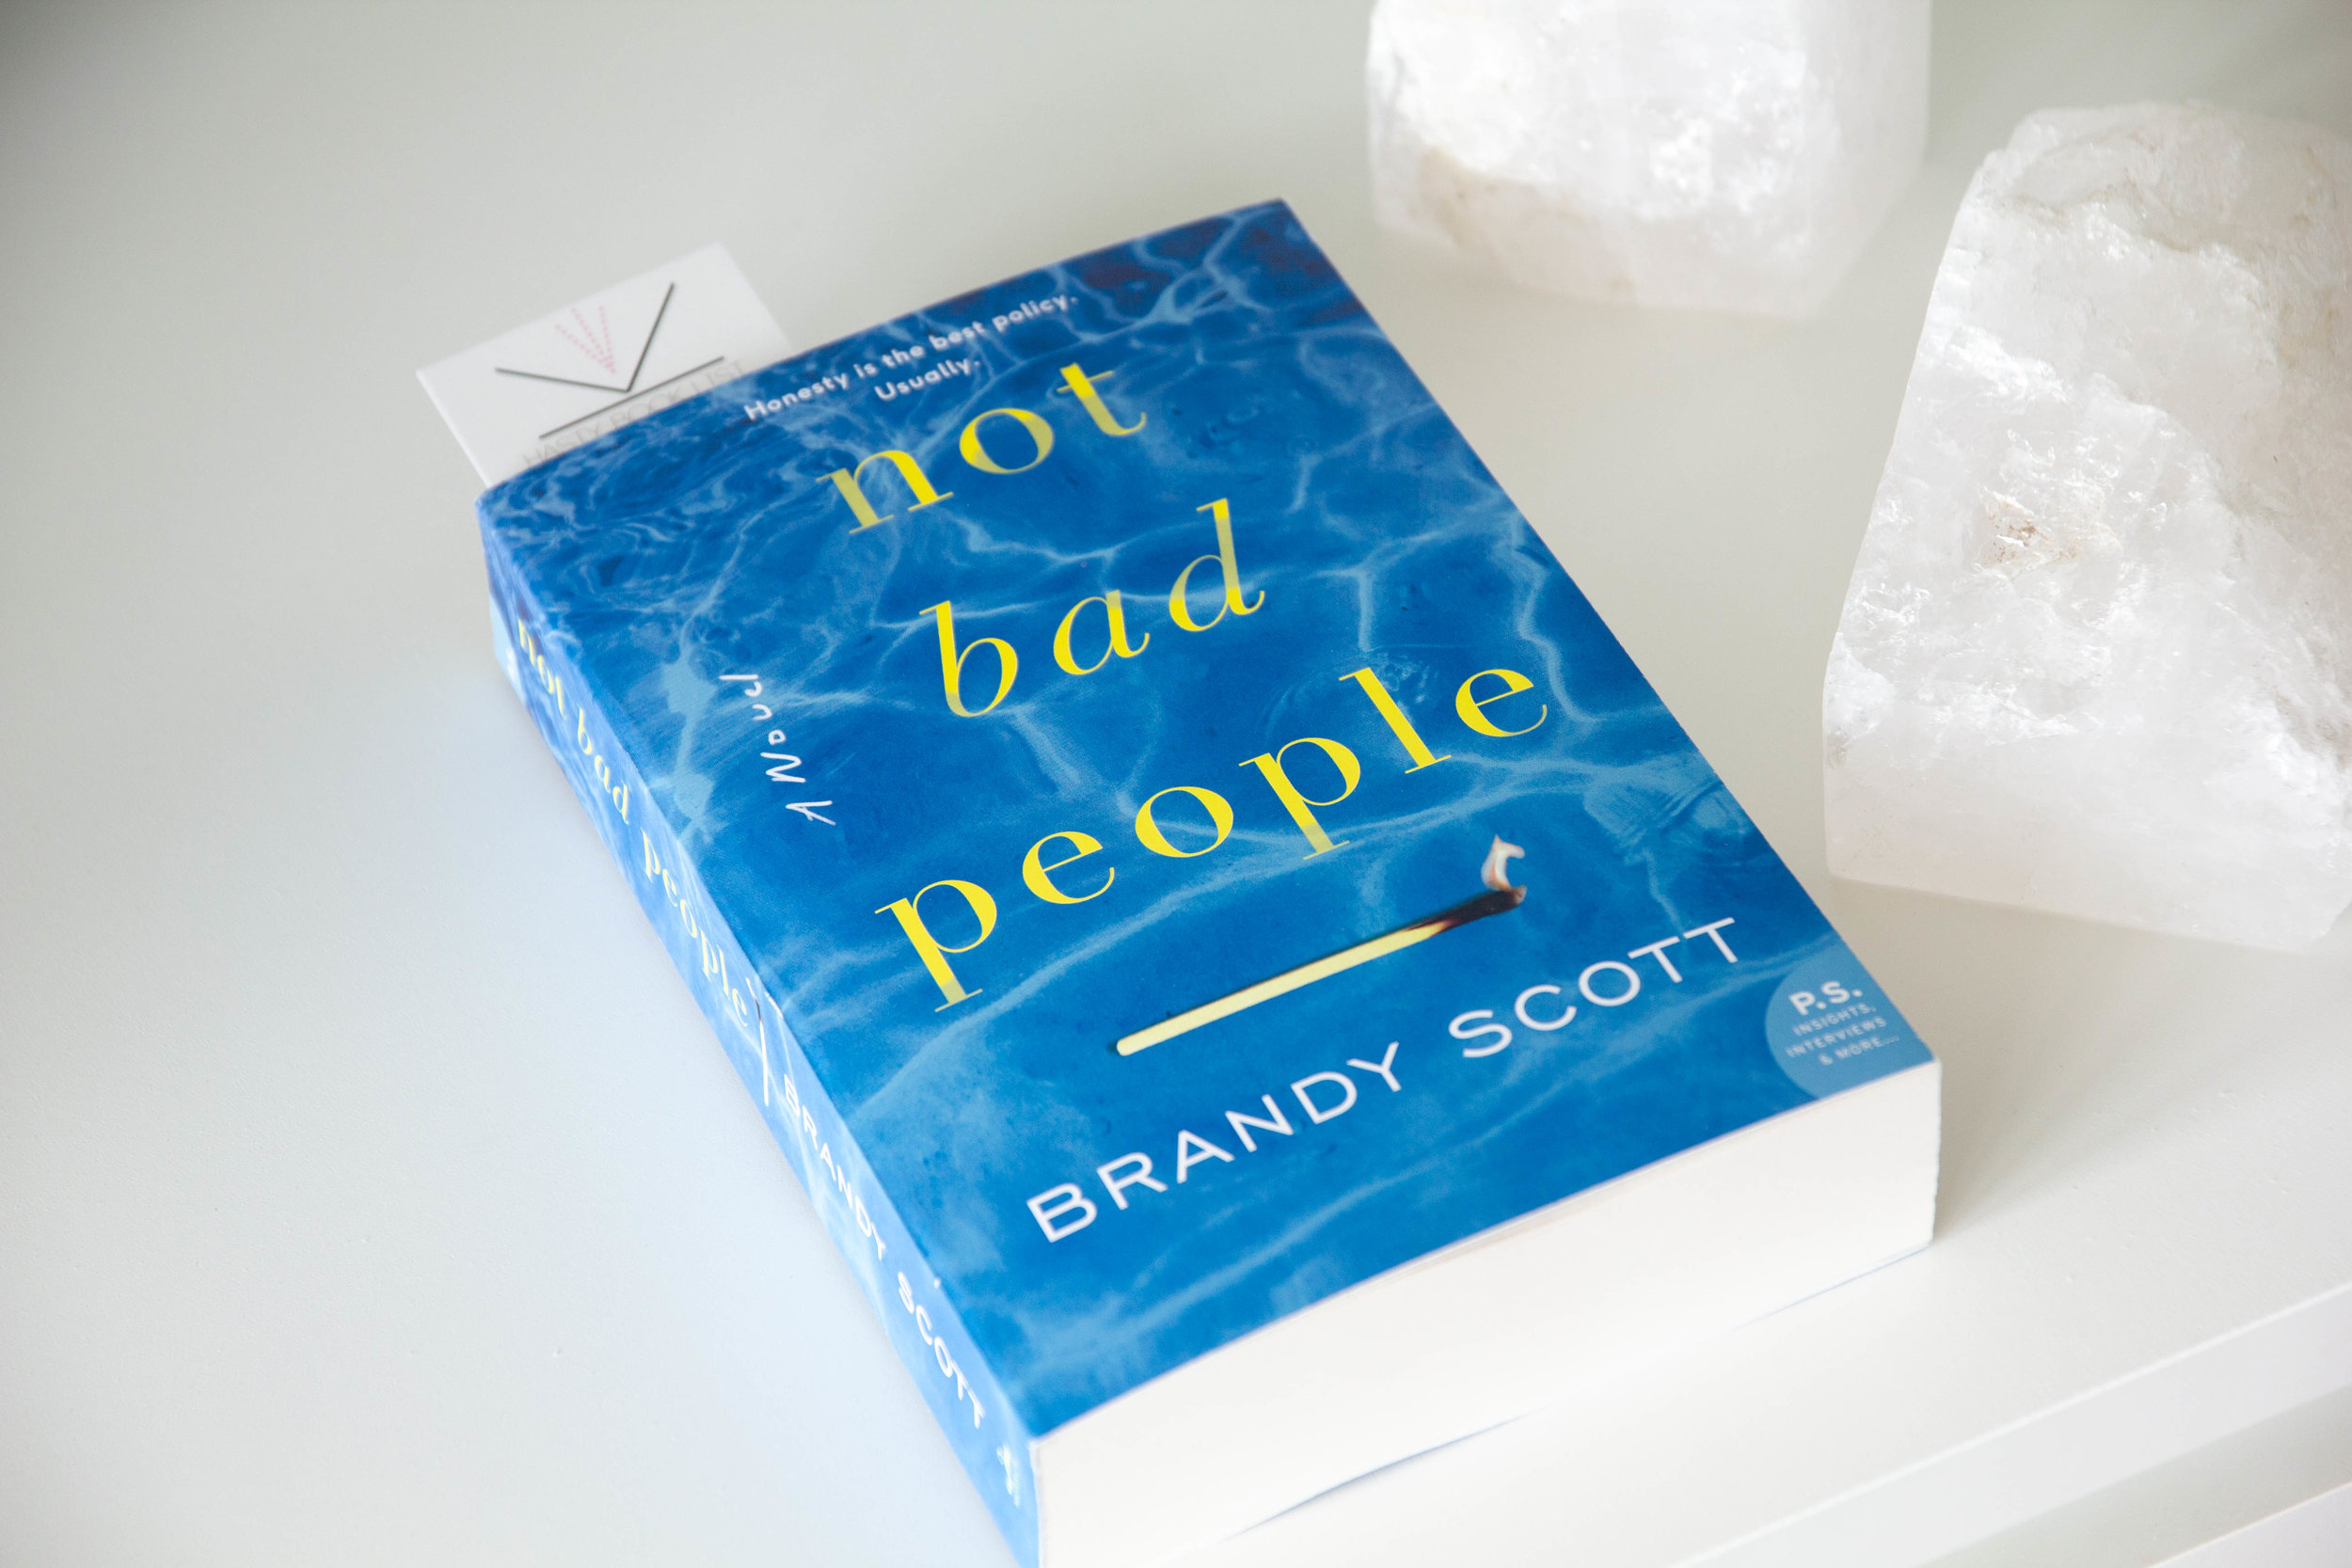 Book Feature - Not Bad People by Brandy Scott